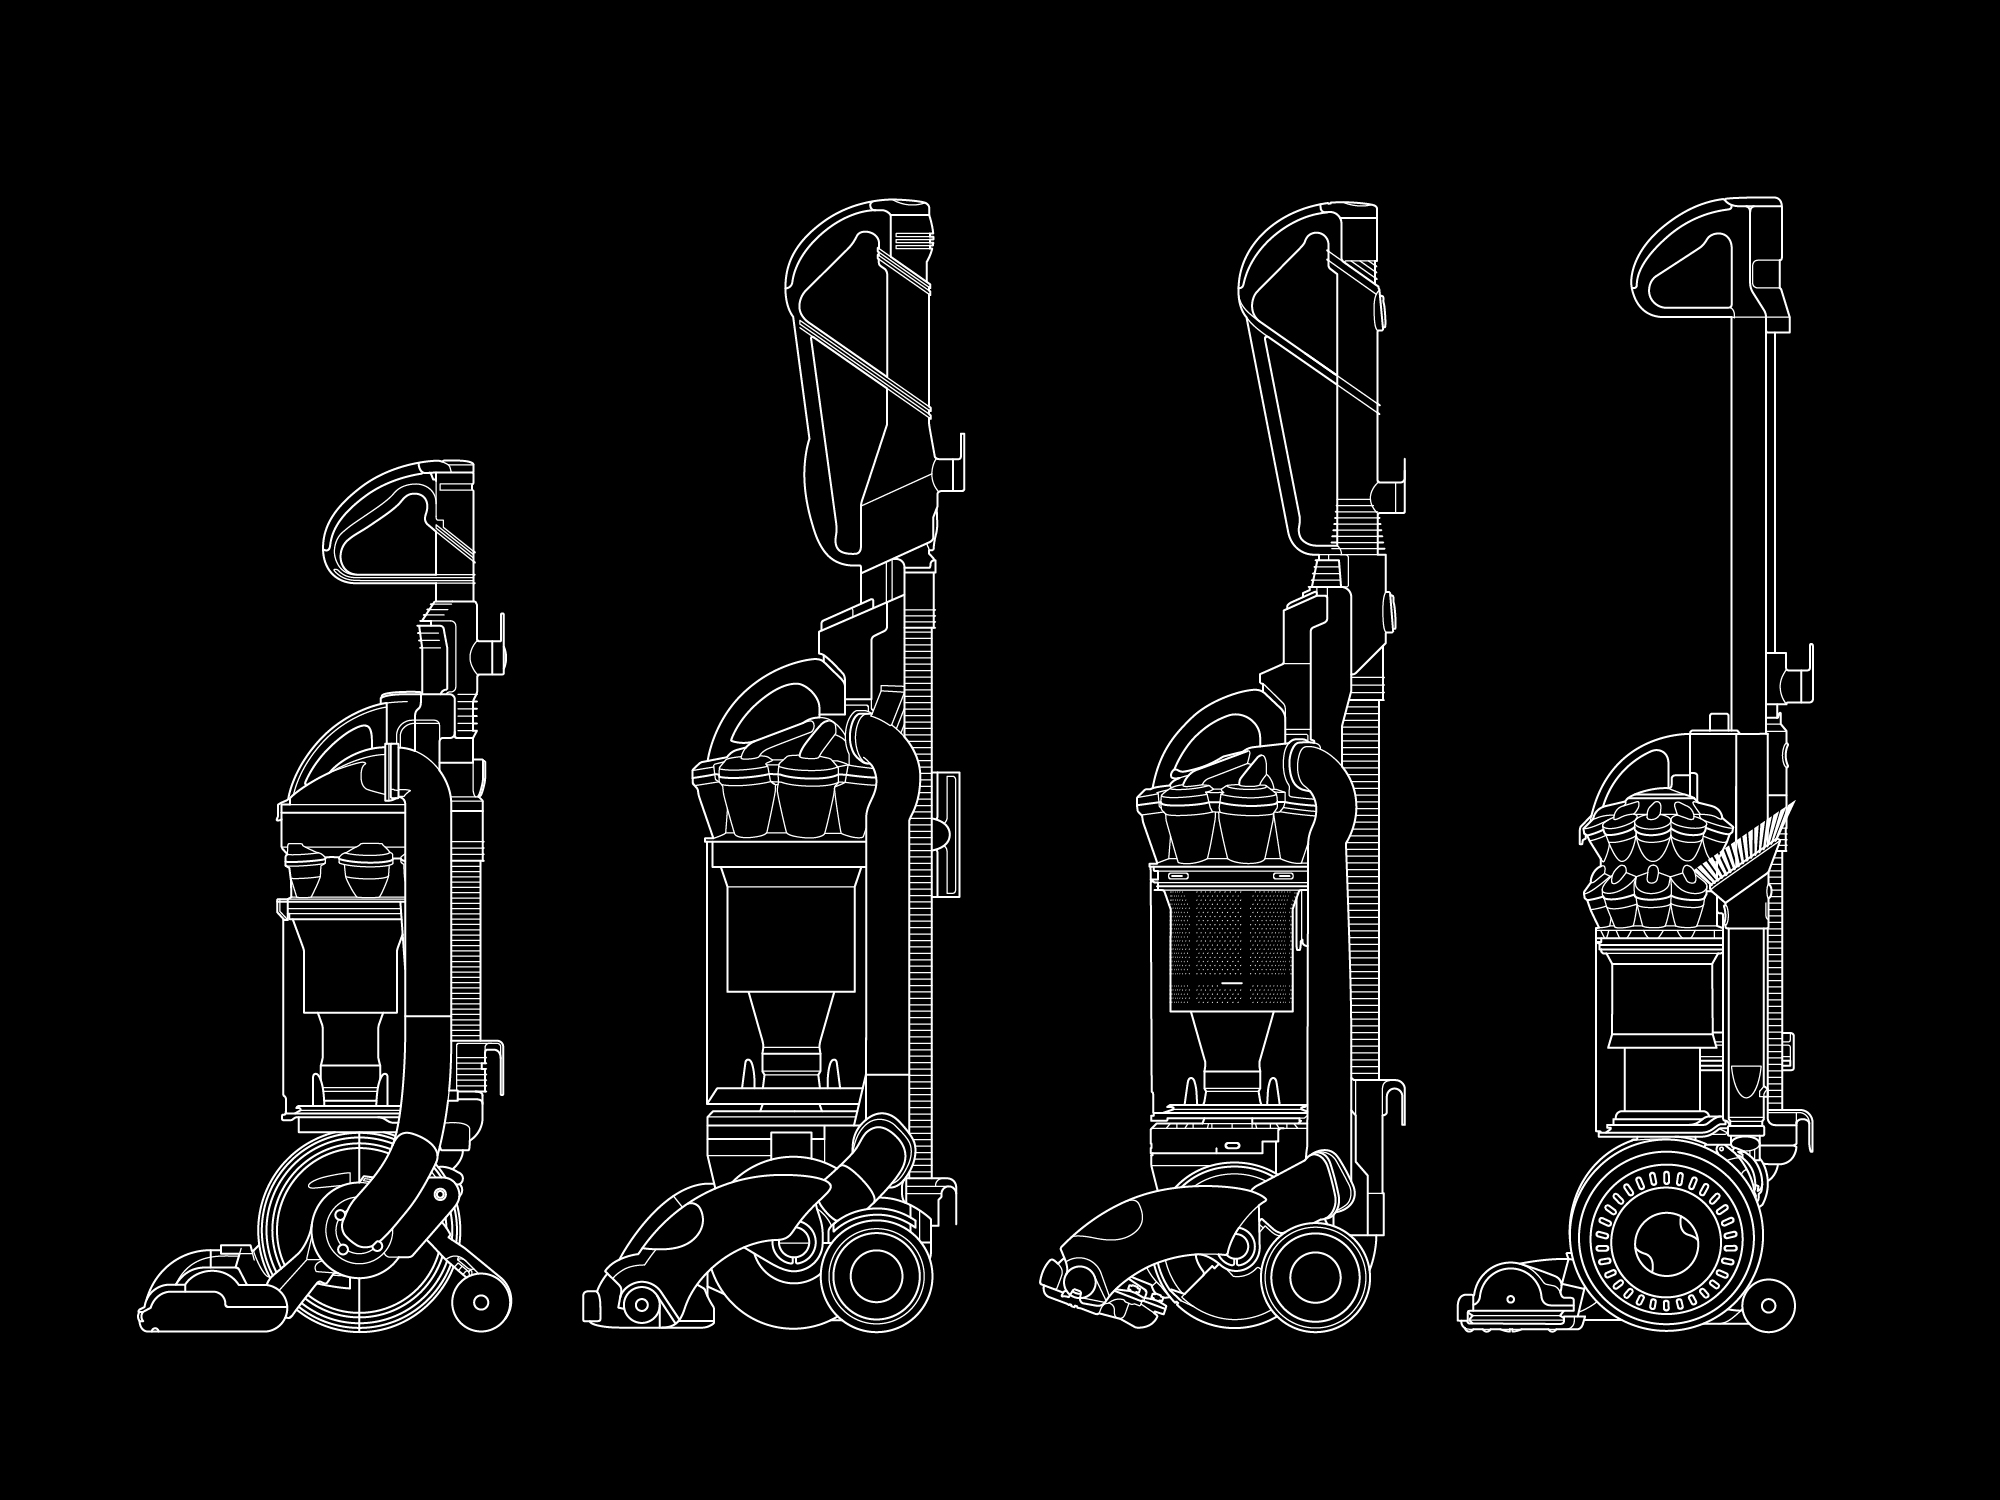 Dyson – stand up vacuum technical illustrations black